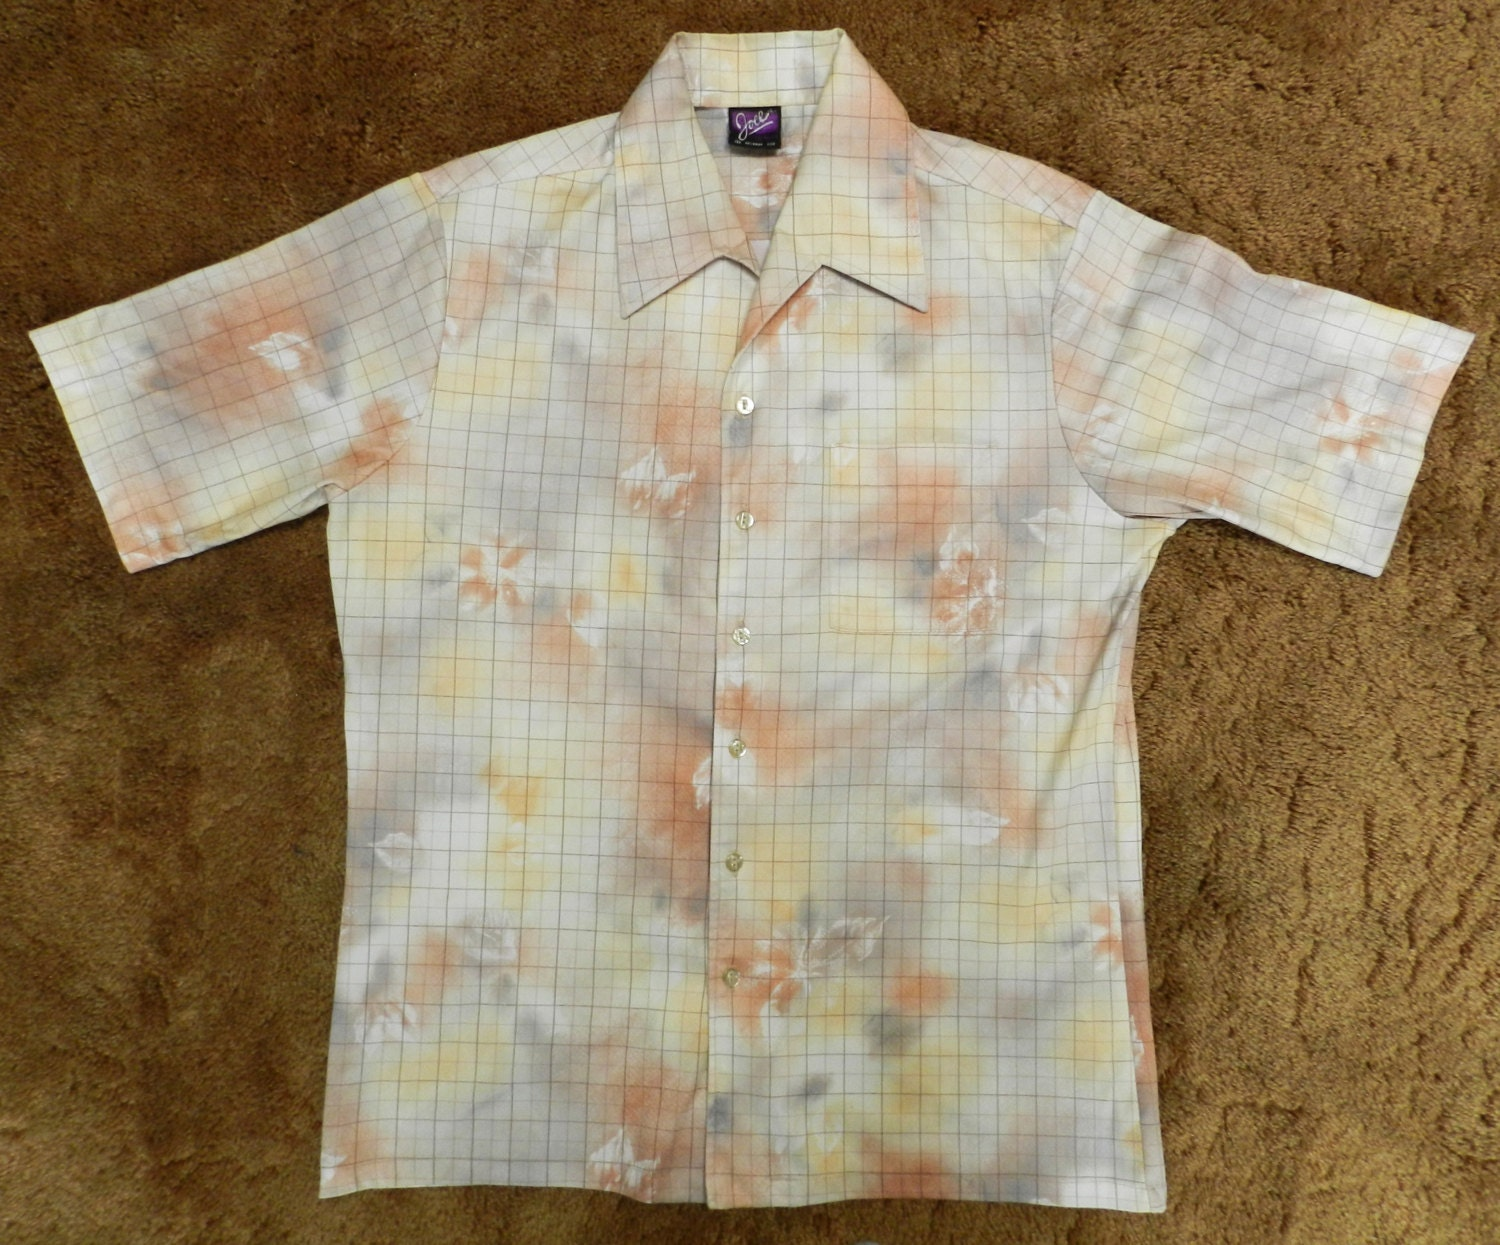 Vintage 70s polyester button up shirt club casual joel for Polyester button up shirt